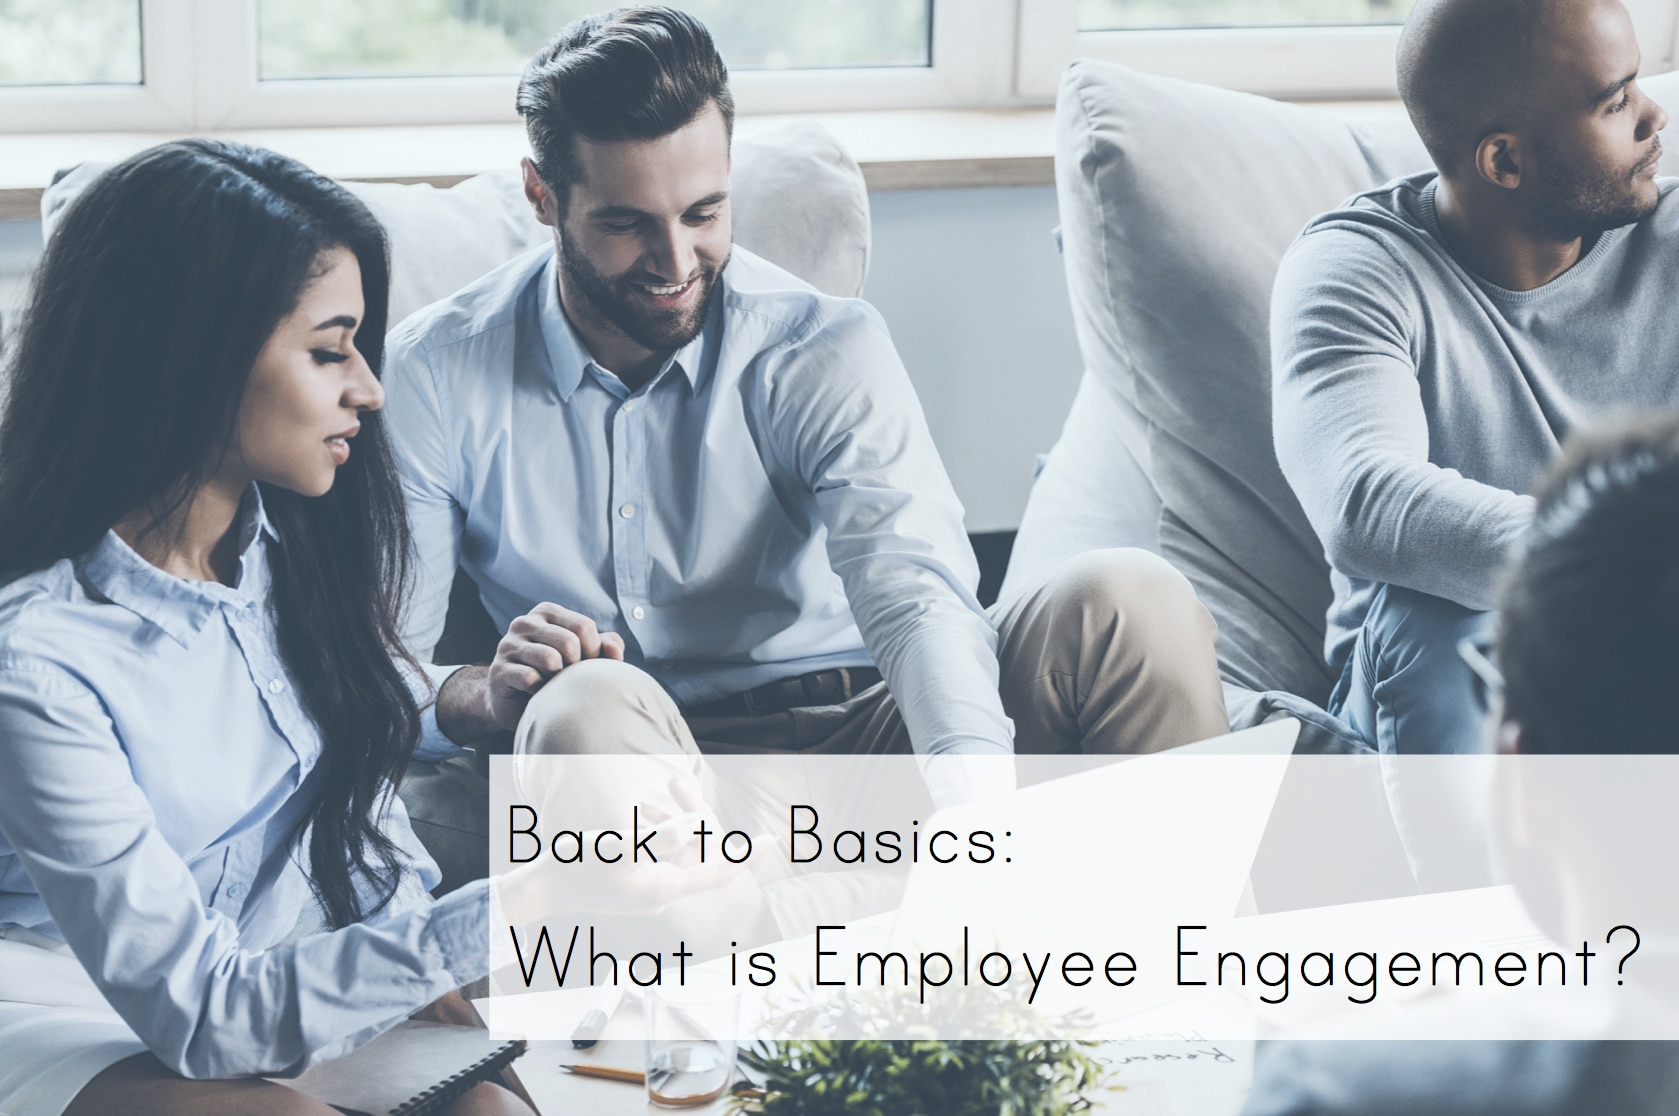 Back to Basics: What is Employee Engagement?